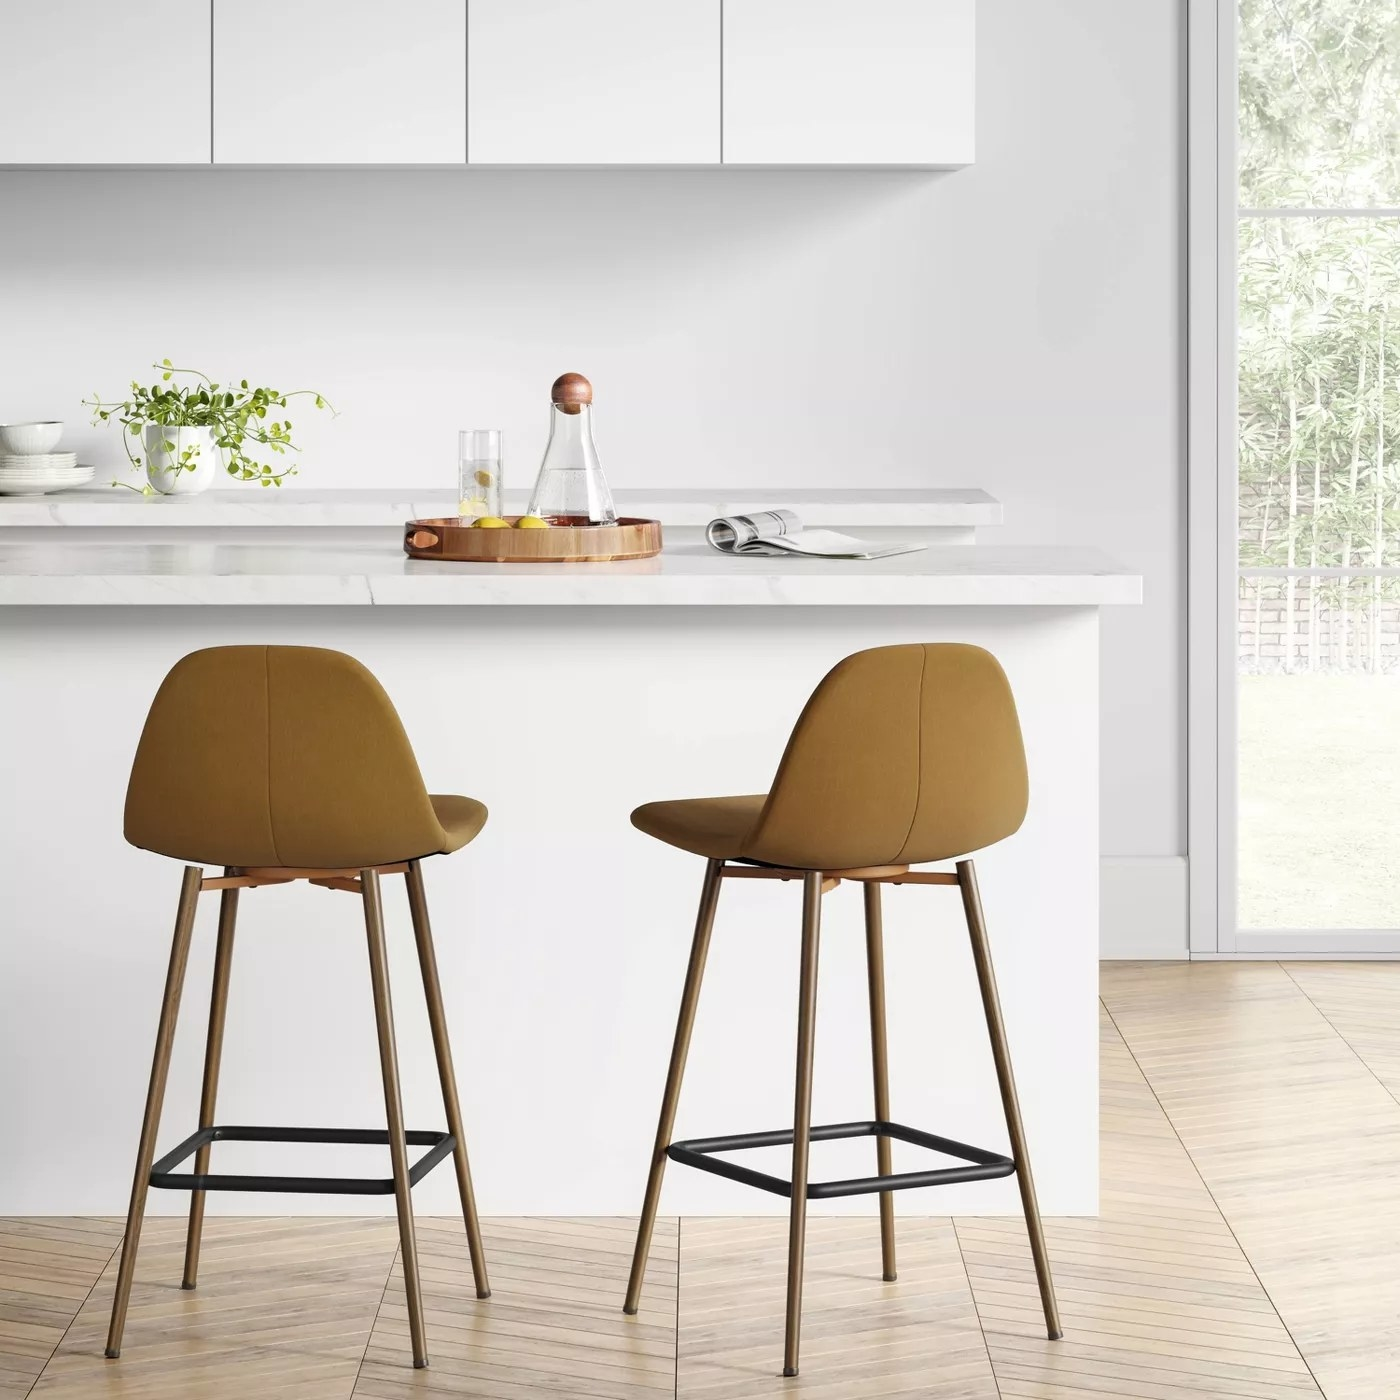 Two mustard-colored bar stools with metal legs in front of a kitchen island